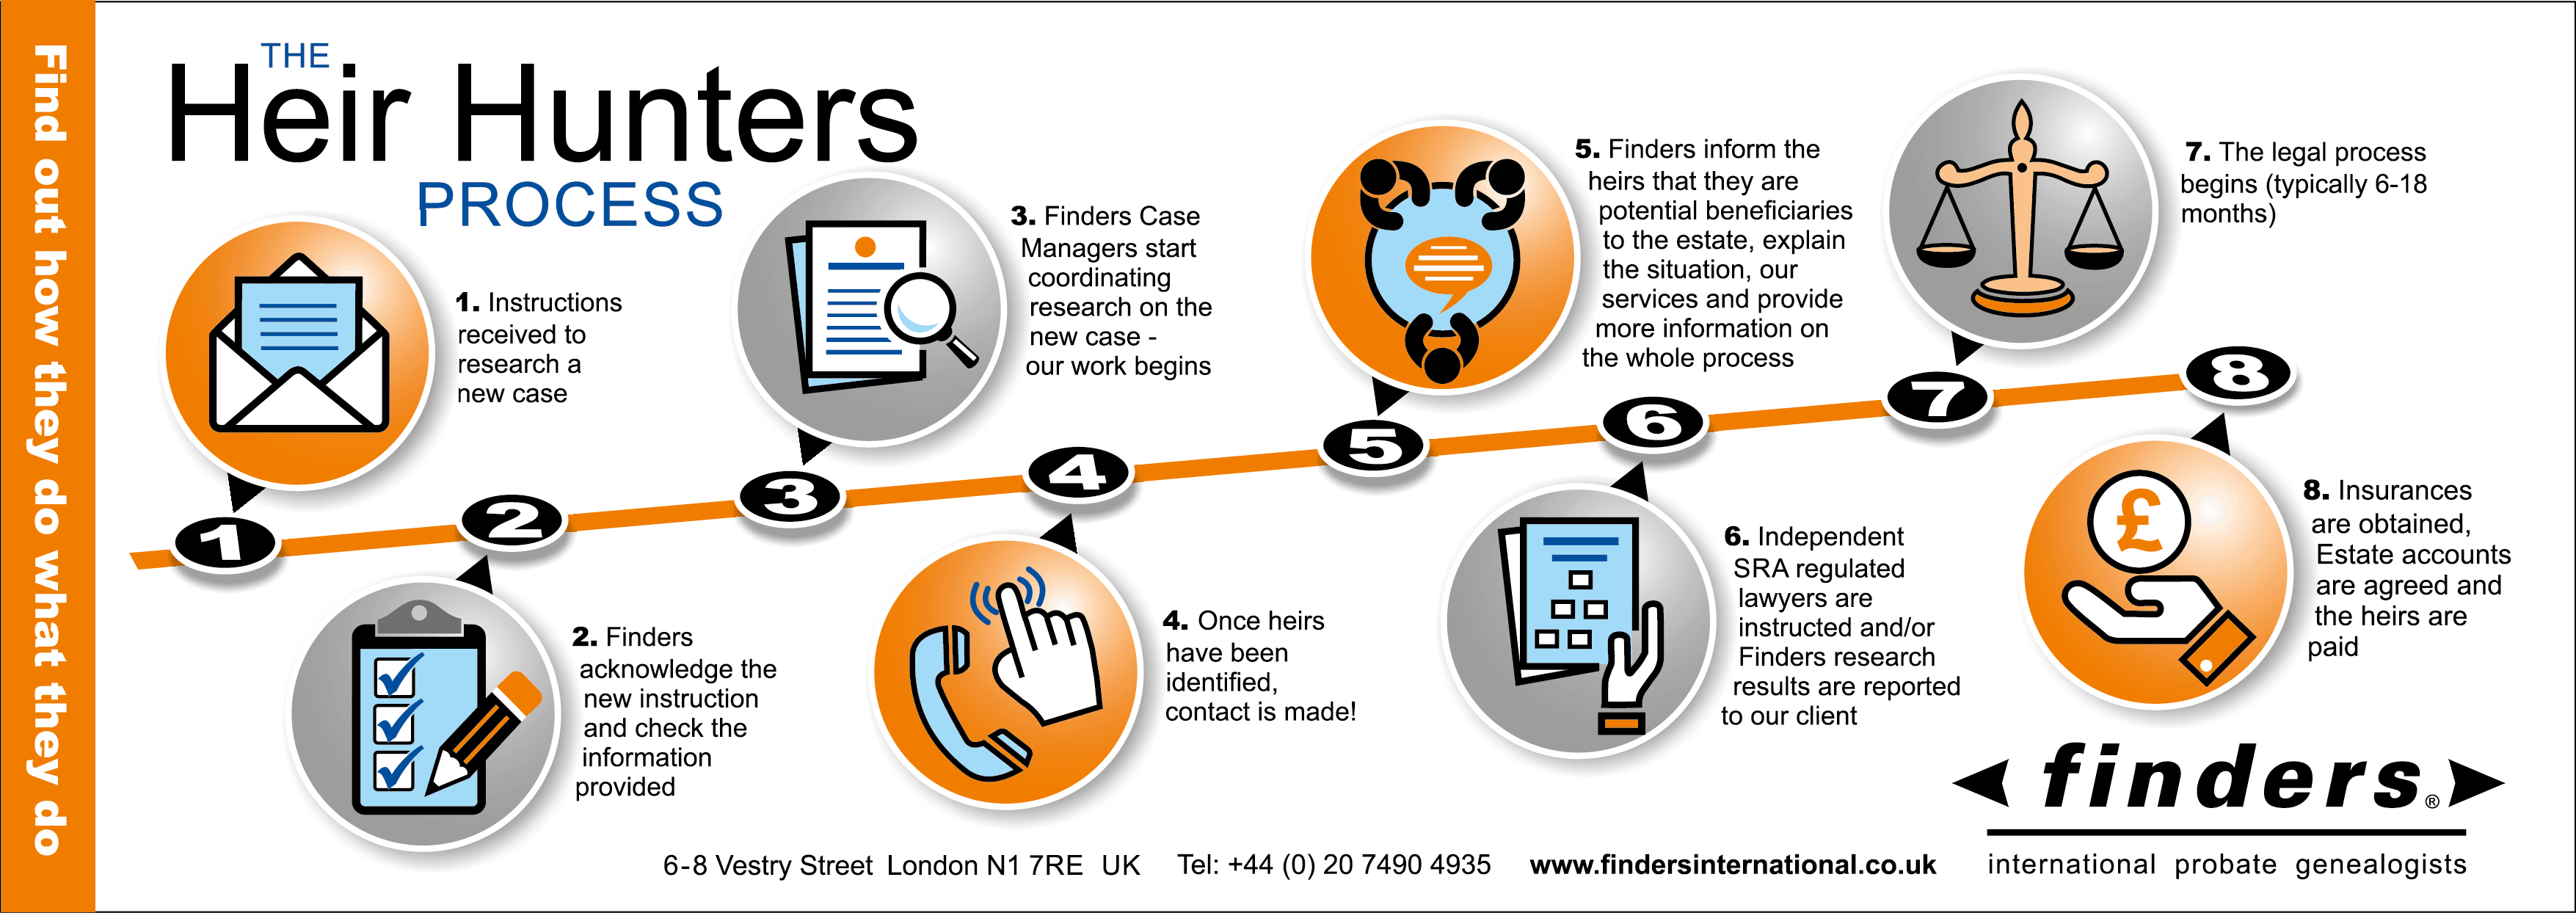 Finders-The HeirHunters -prosessi infografia